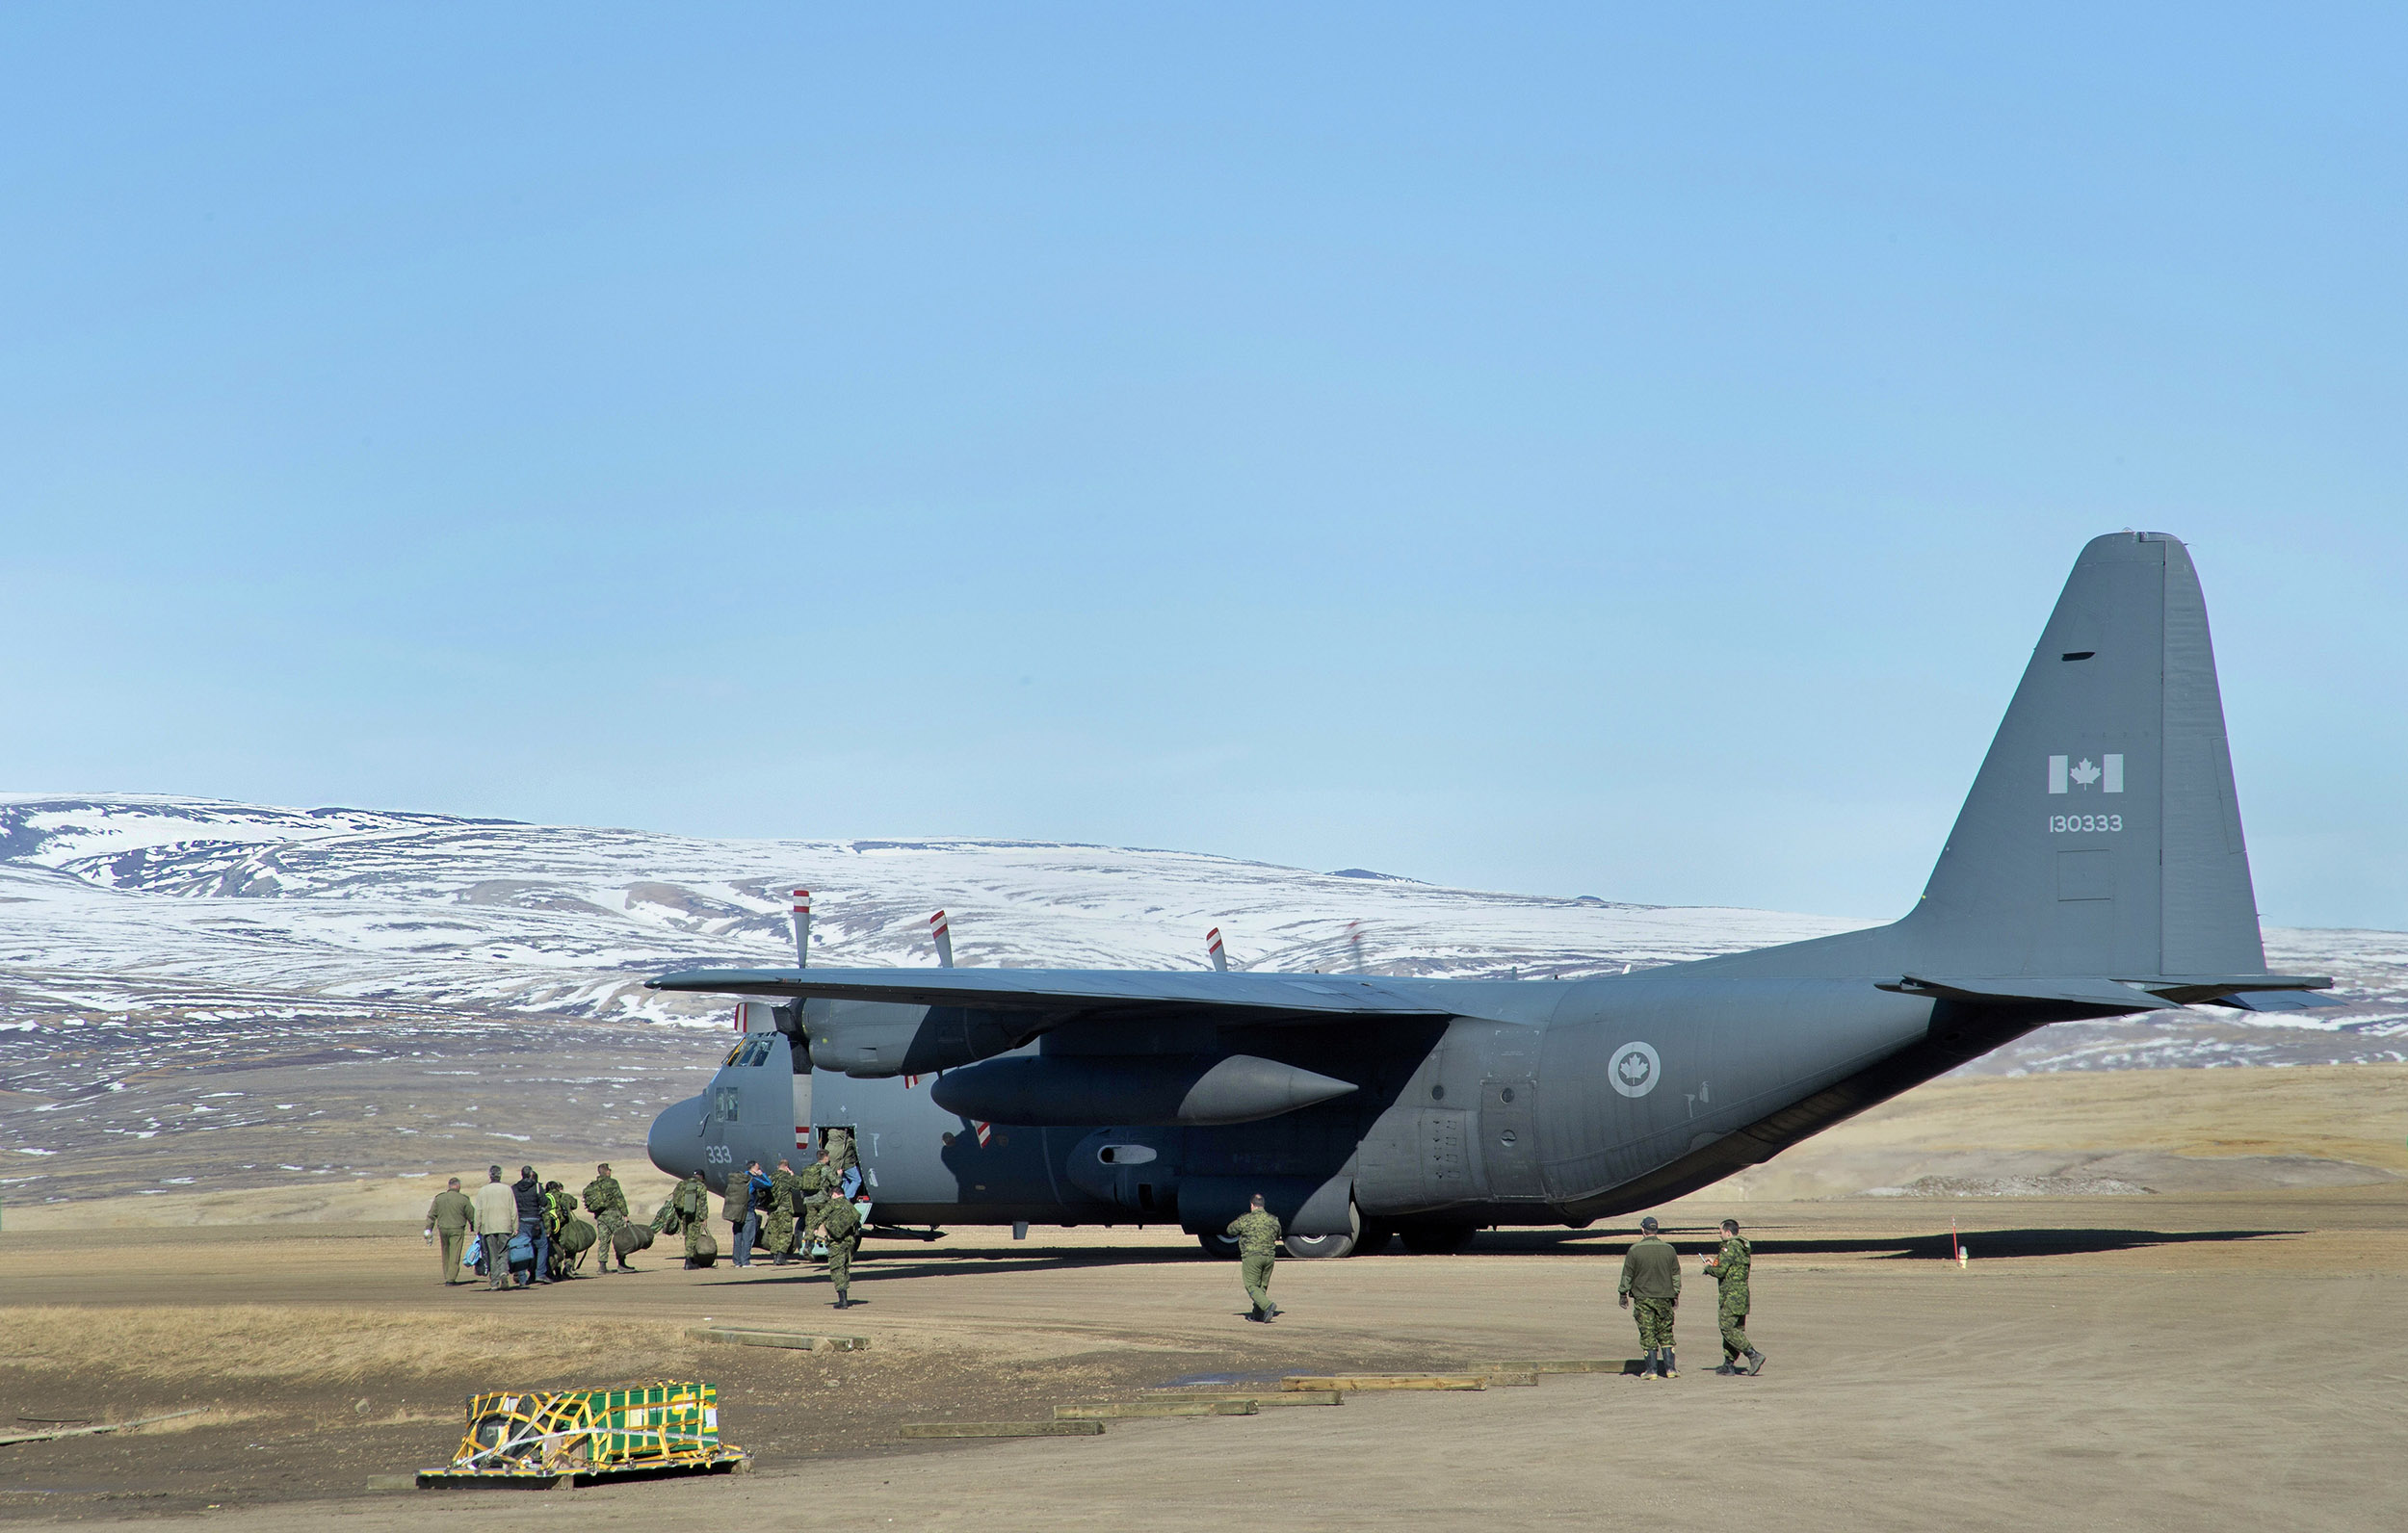 Canadian Armed Forces members board a CC-130 Hercules aircraft from 426 Squadron, at Canadian Forces Station Alert en route to Eureka, Nunavut during Operation Nevus 2016, on June 14, 2016. PHOTO: Petty Officer 2nd Class Belinda Groves, YK-2016-040-002